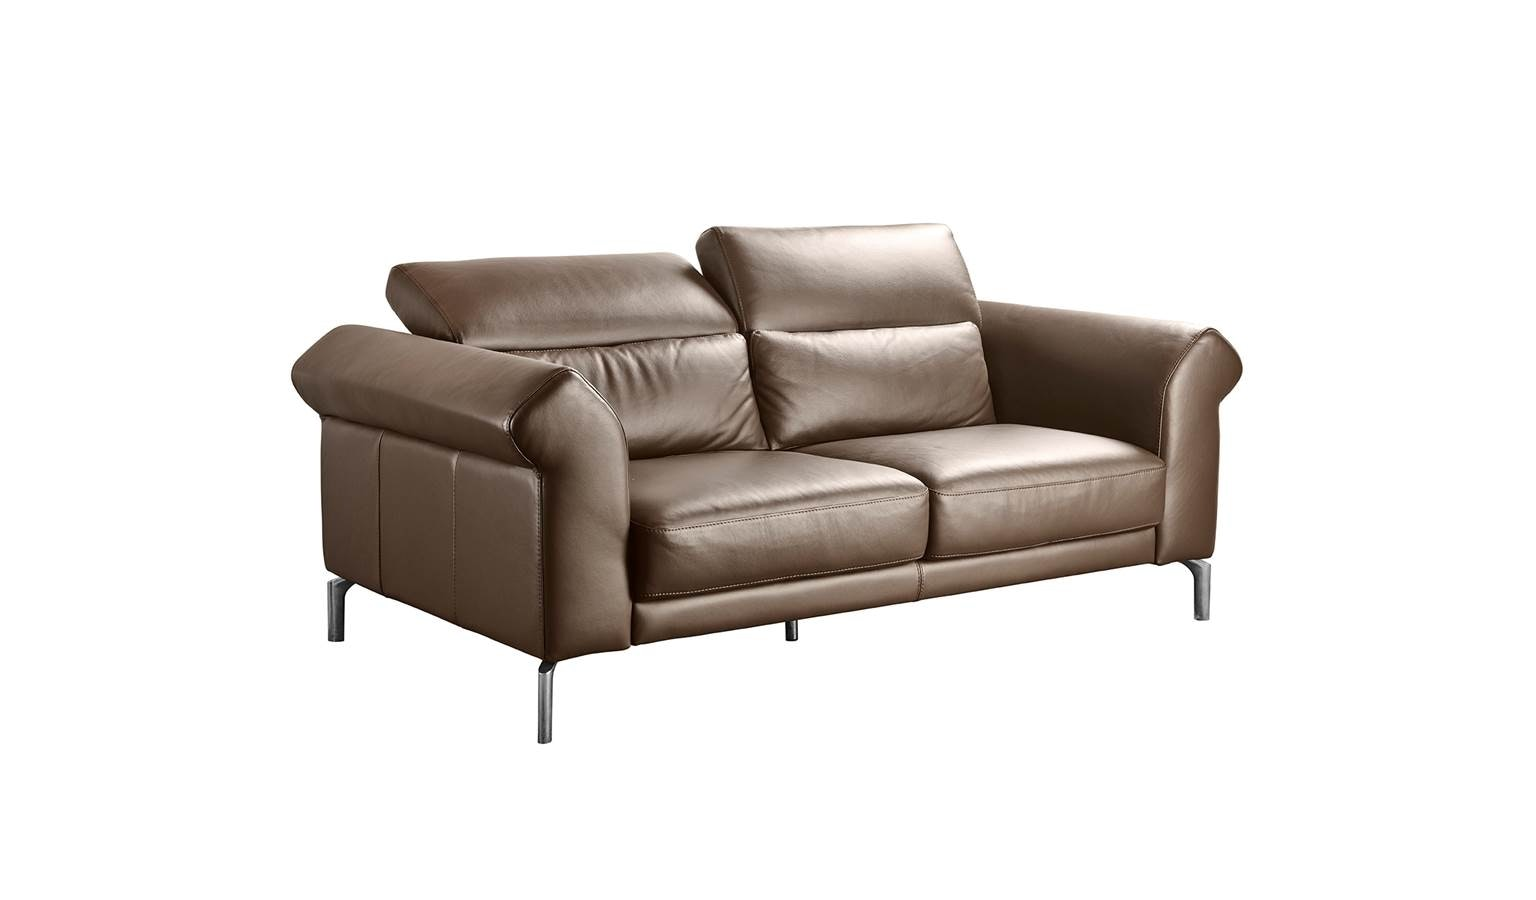 Brigida Italian Full Leather 2.5-Seater Sofa